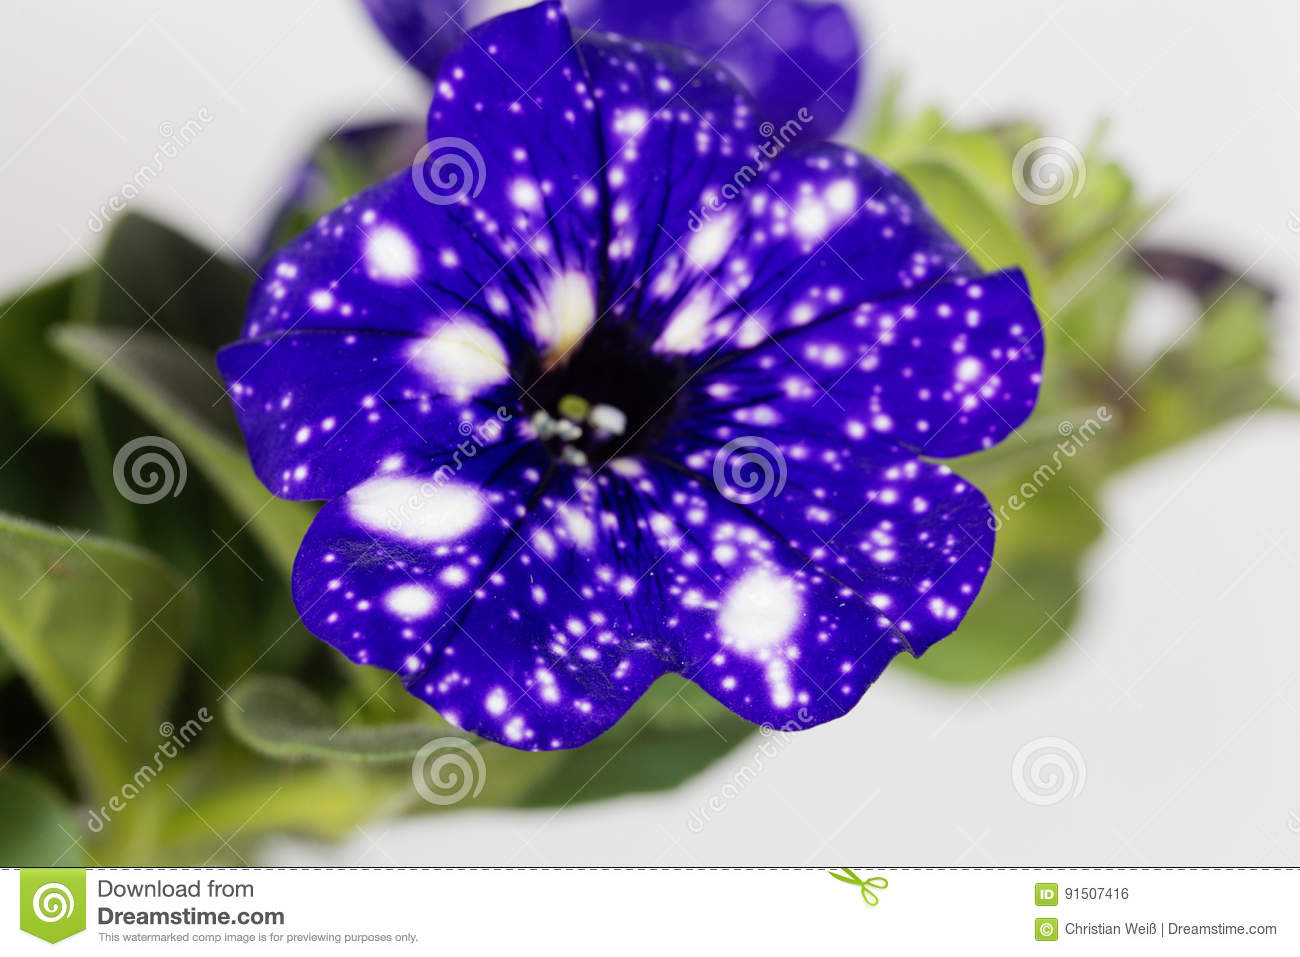 Spots Weiß Blue Flowers With White Spots Of A Cultivated Hybrid Petunia Stock